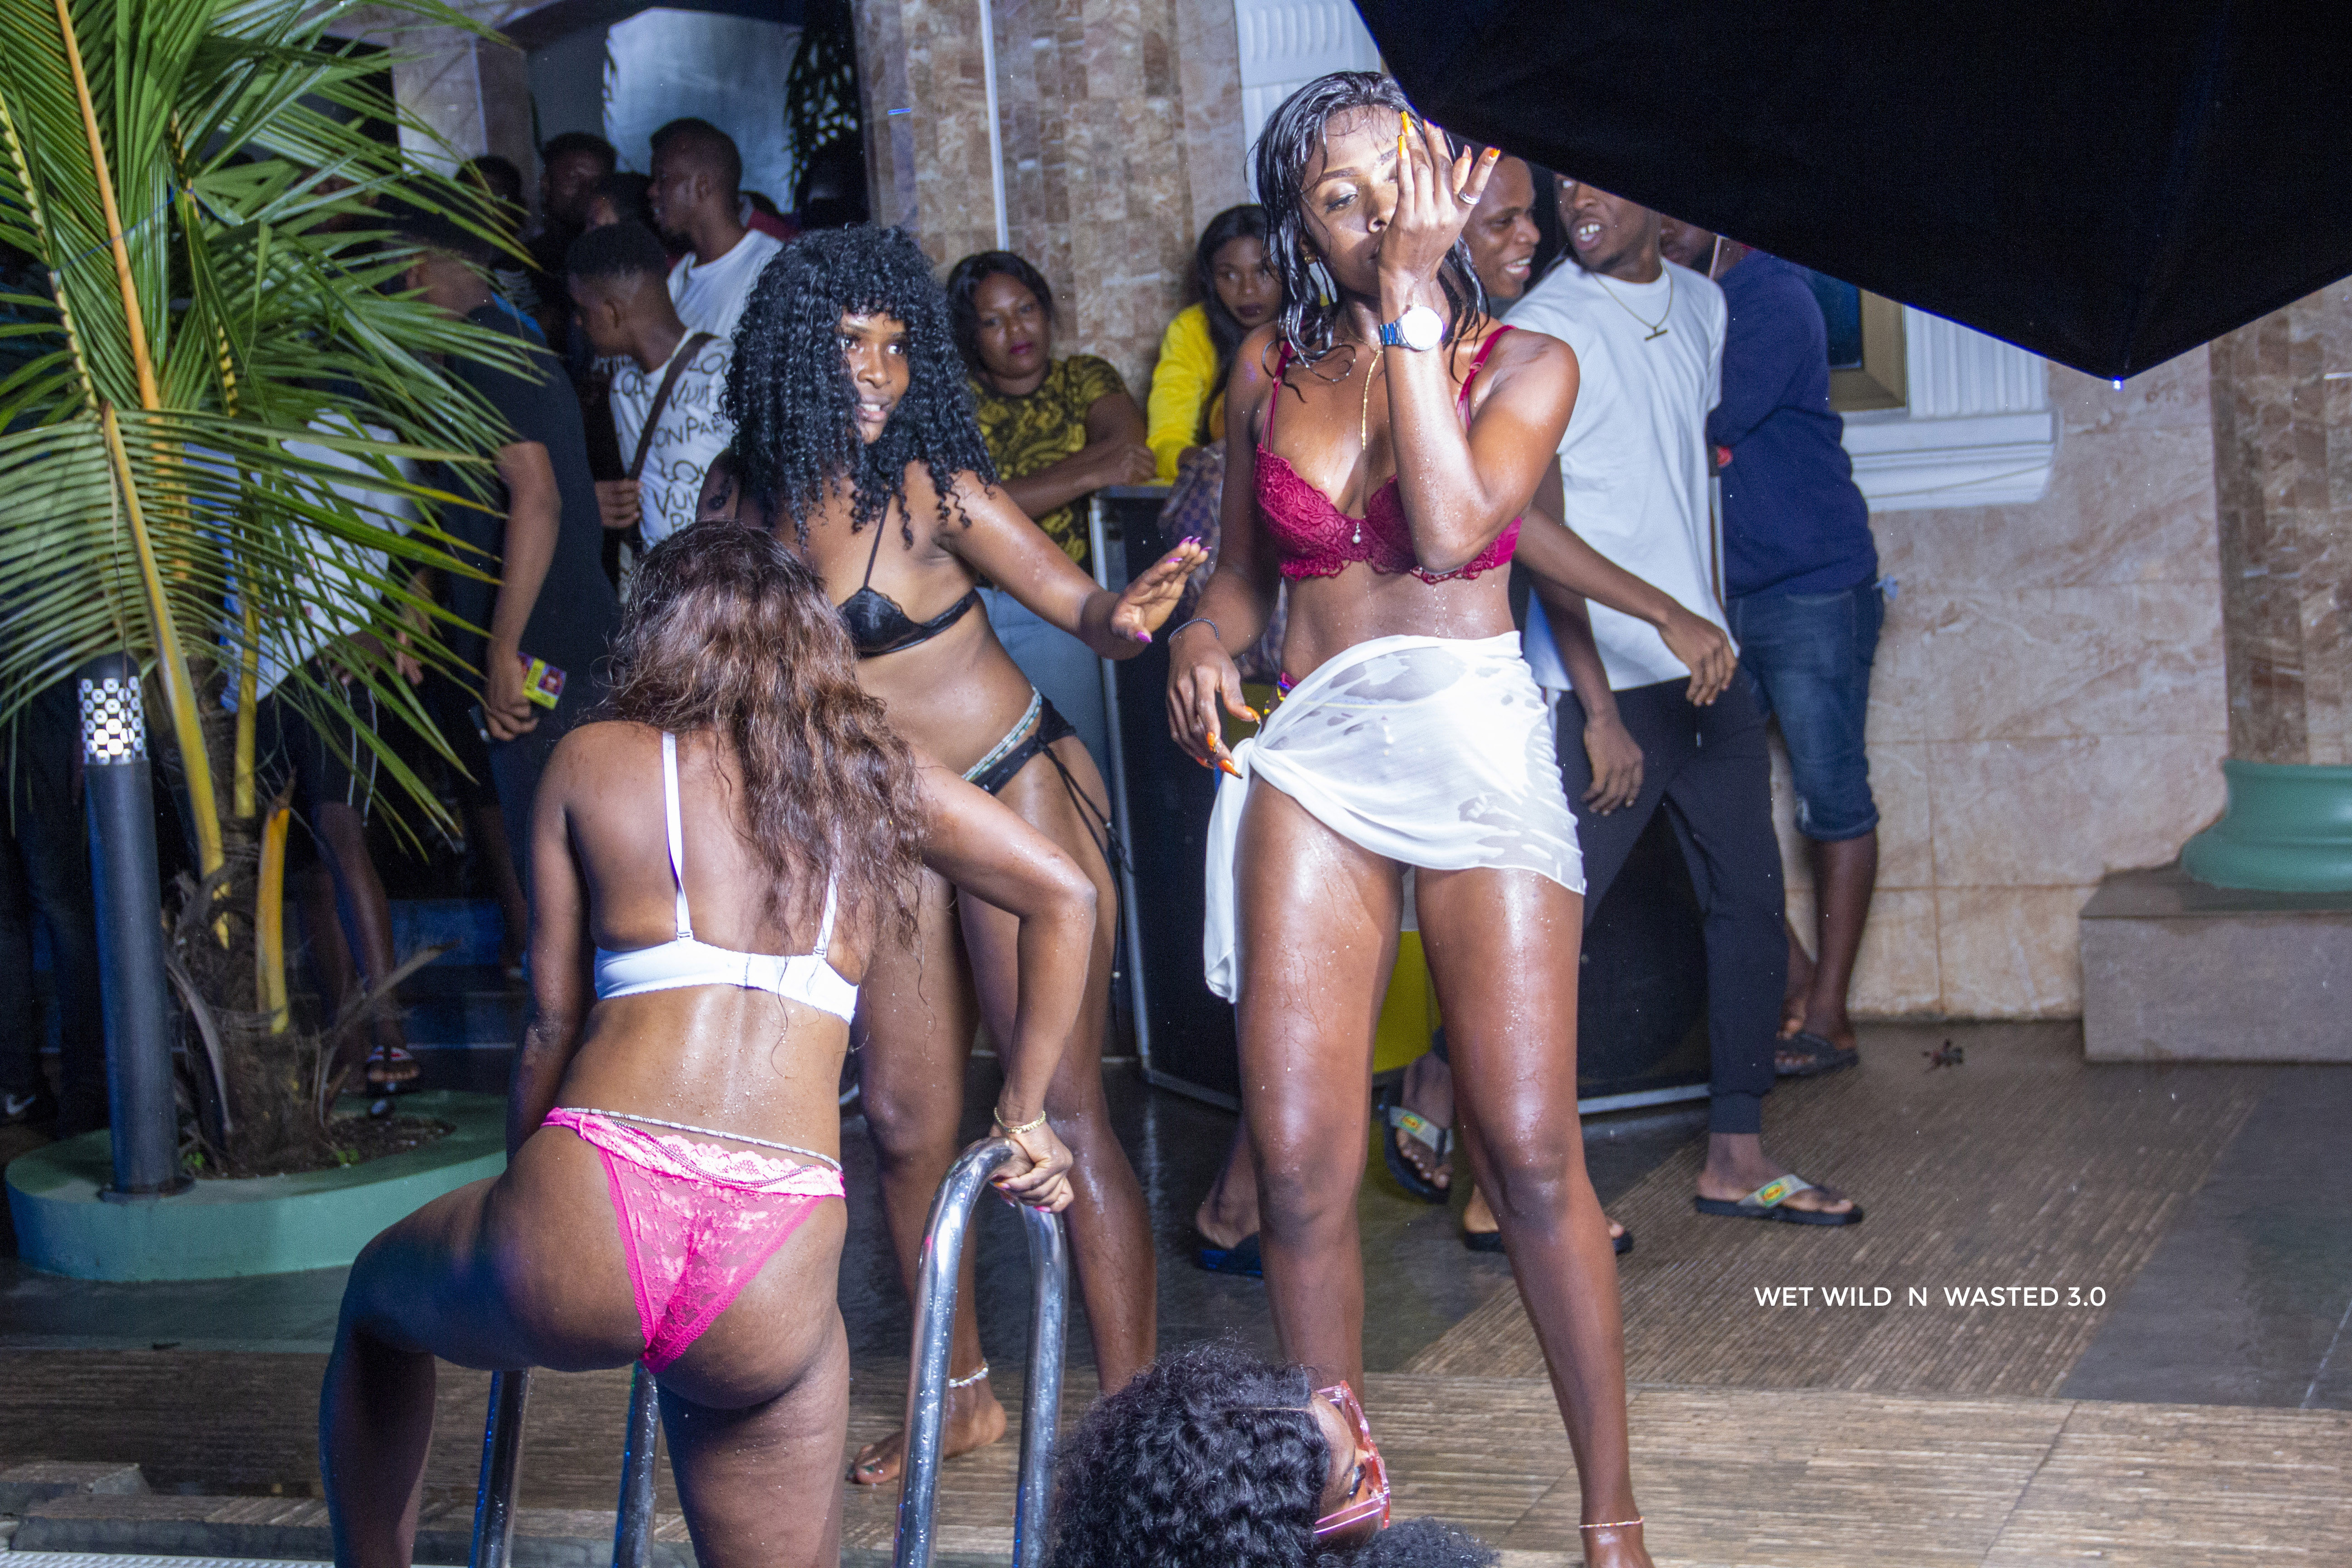 The Pool Party That Got Many People WastedWET WILD N WASTED BY DJ VAL